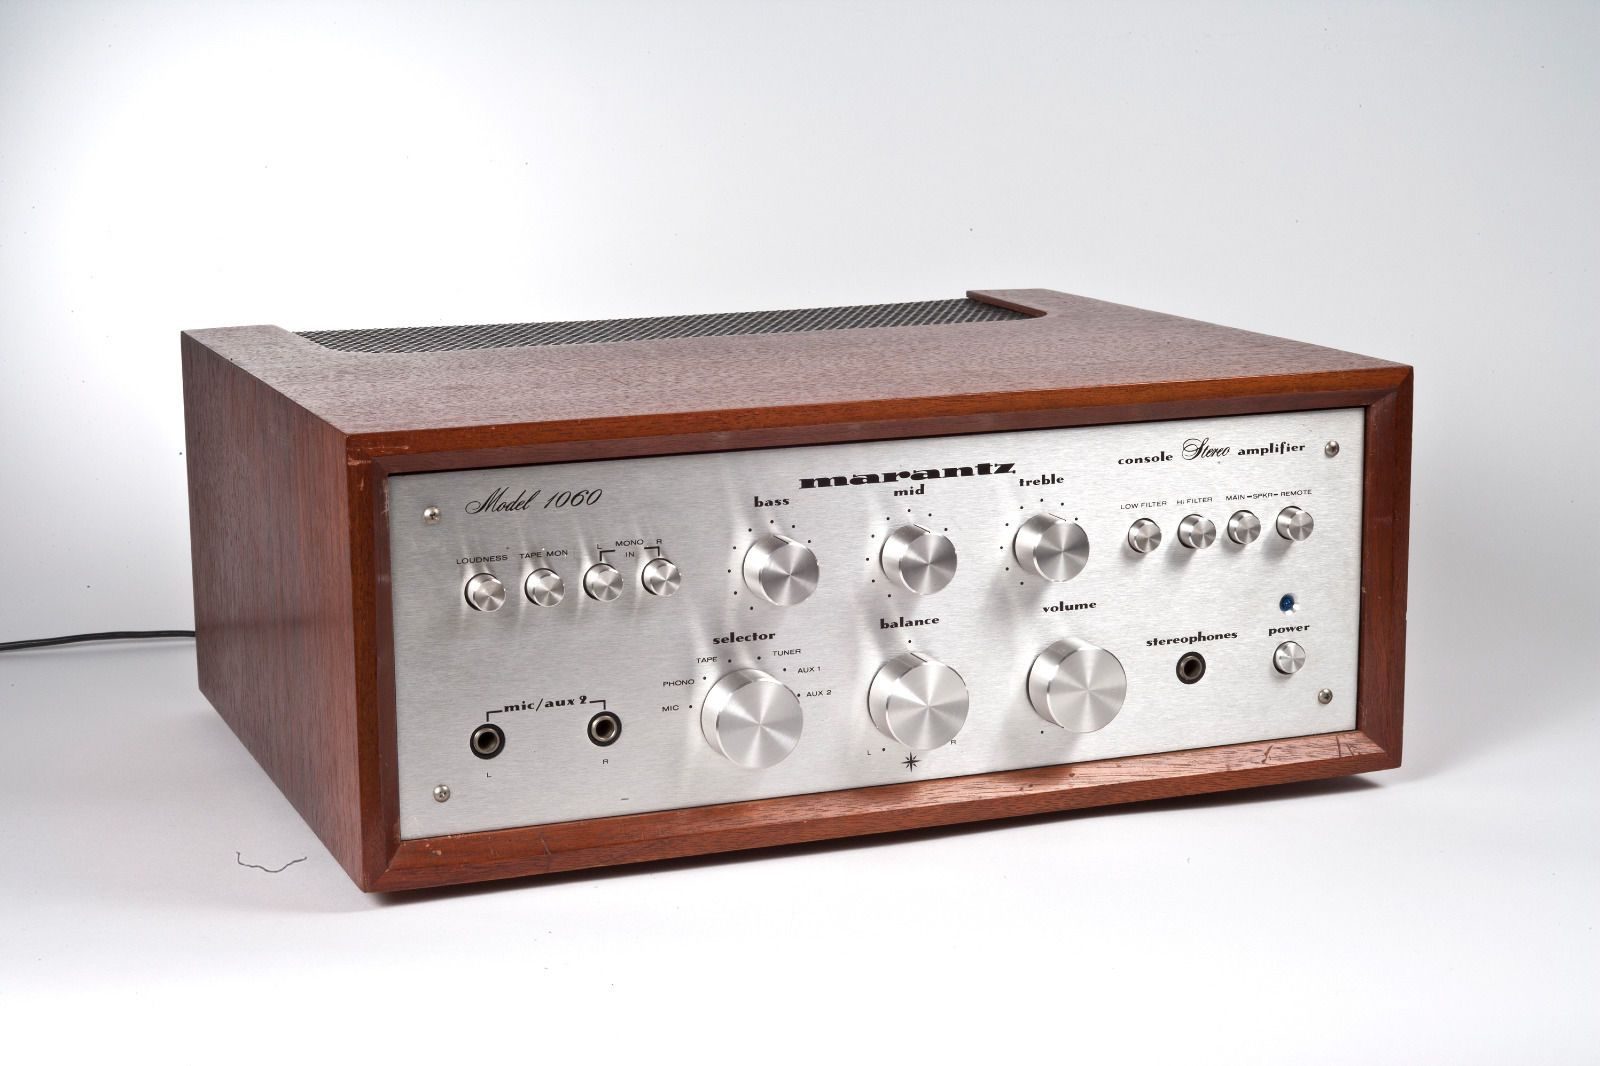 marantz 1060 integrated amp with wc 10 wooden case 30 watts per channel  [ 1600 x 1066 Pixel ]